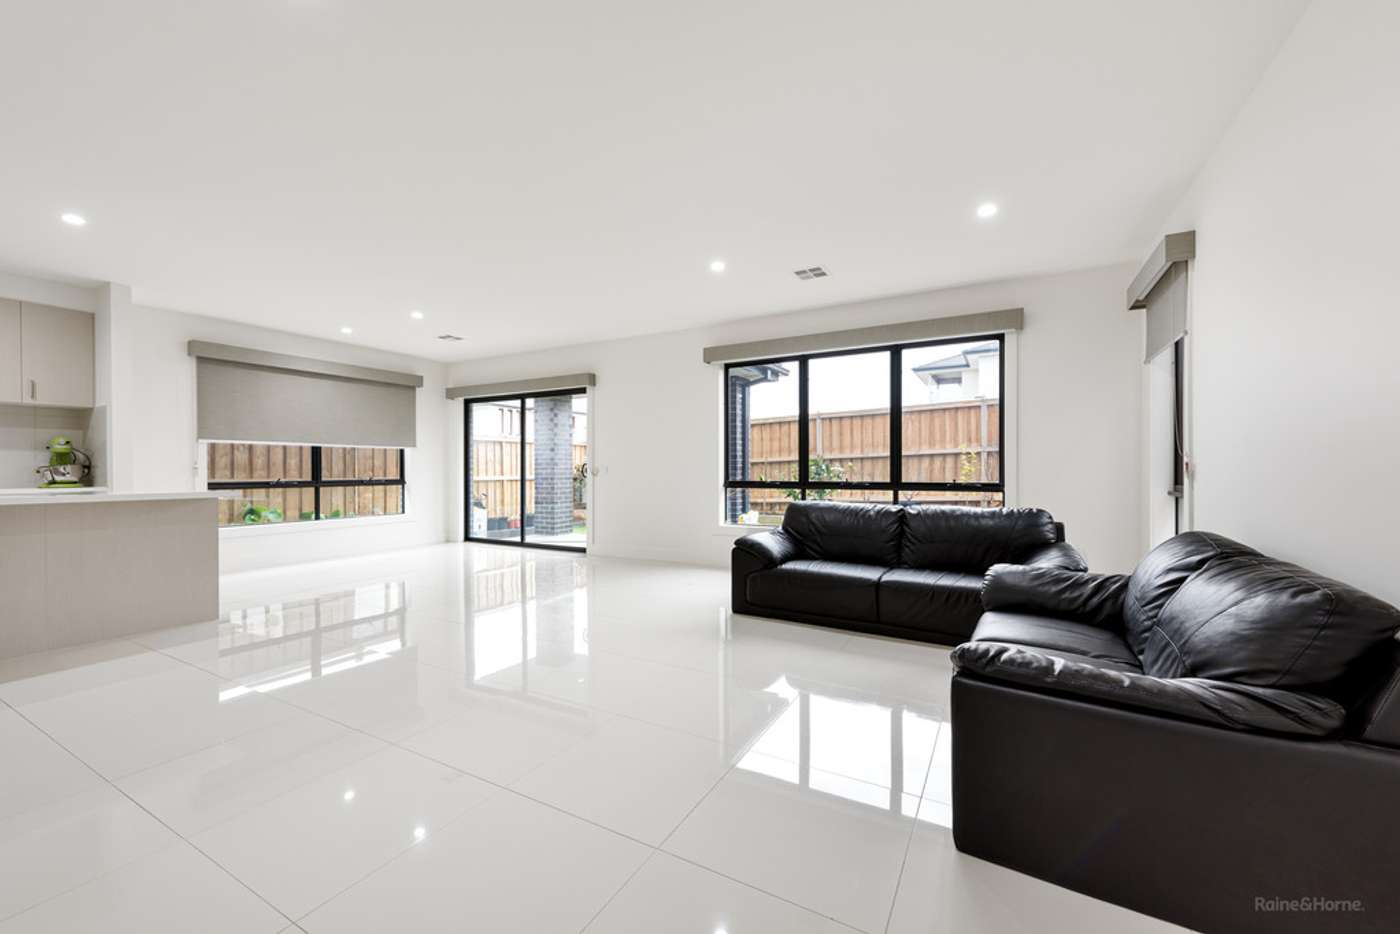 Main view of Homely house listing, 64 Chi Avenue, Keysborough VIC 3173